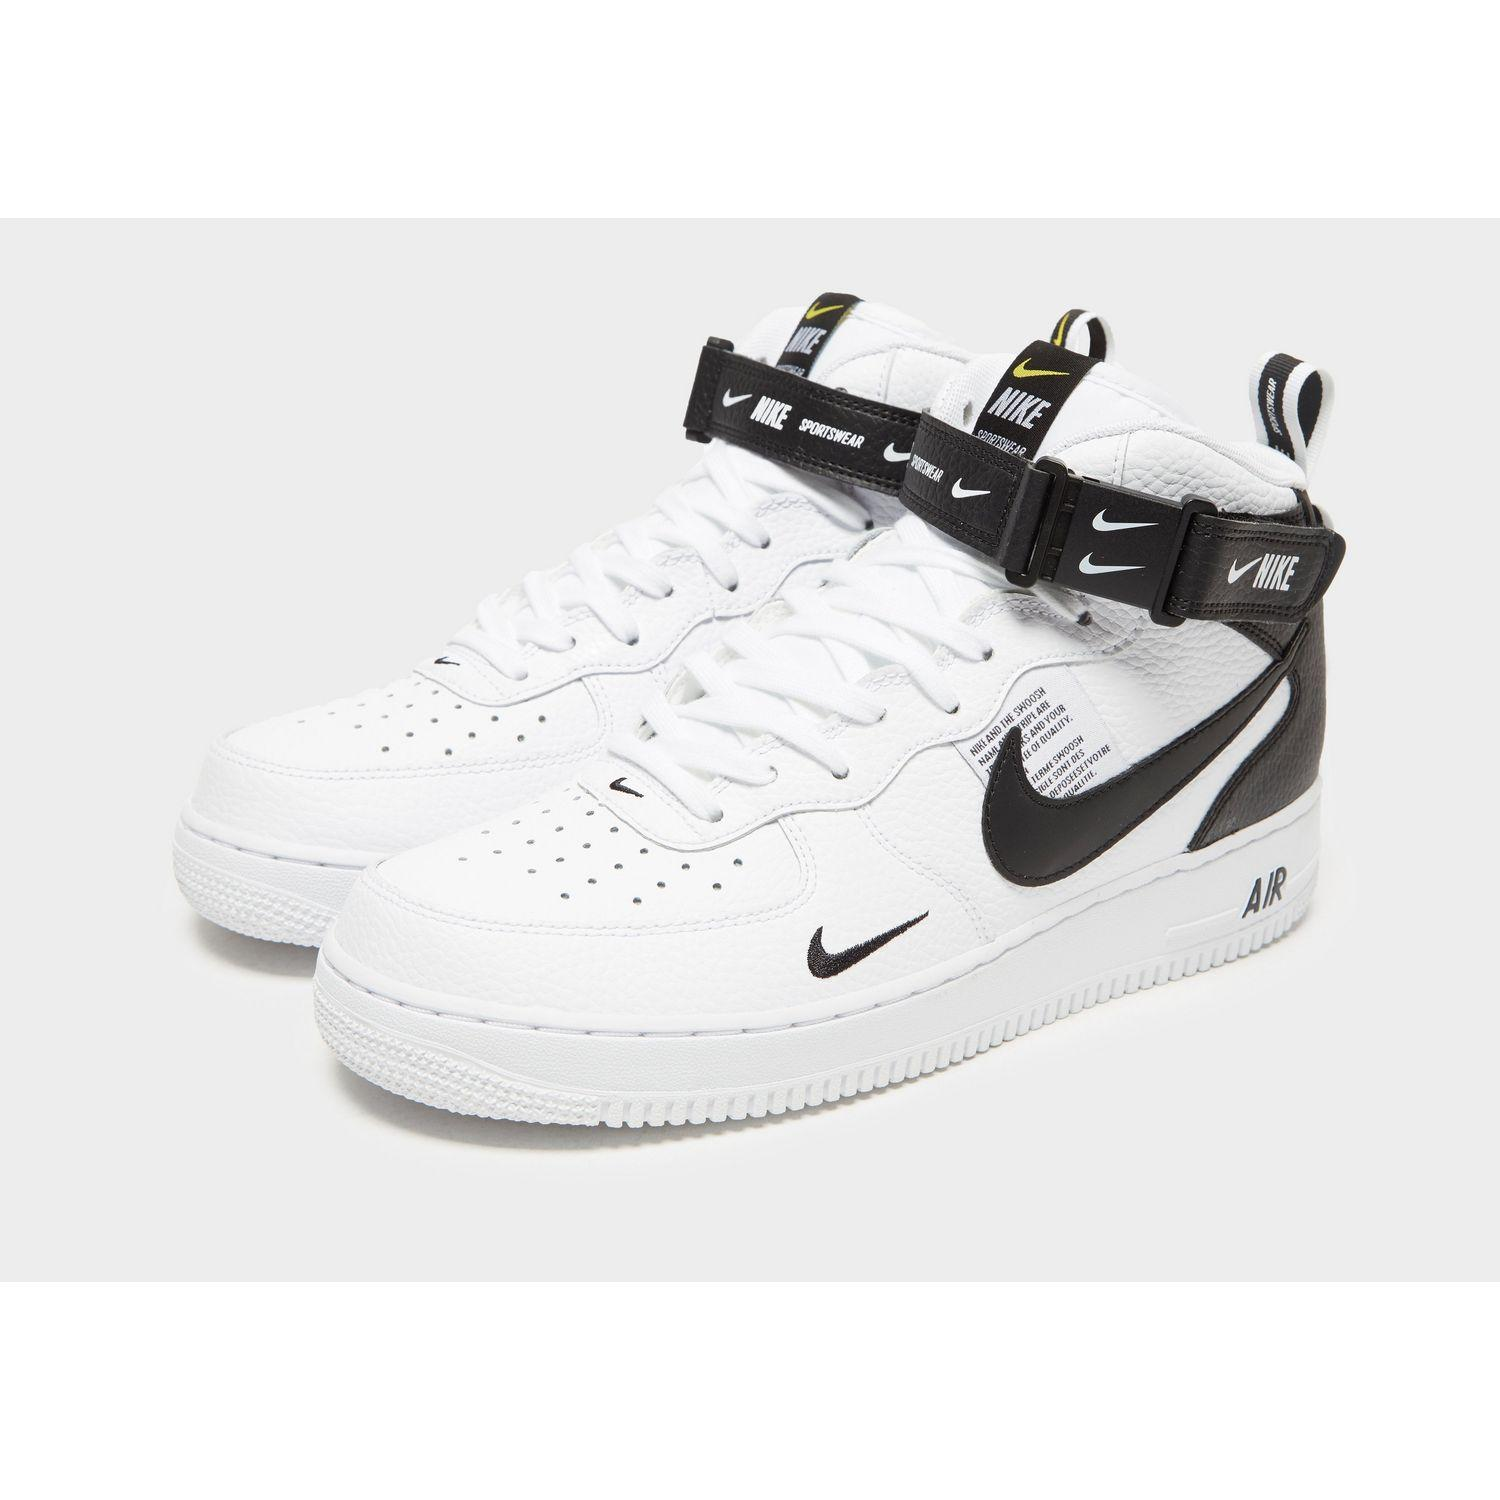 detailed look 8e250 15bd8 Nike Air Force 1 07 Mid Lv8 Men s Shoe in White for Men - Lyst